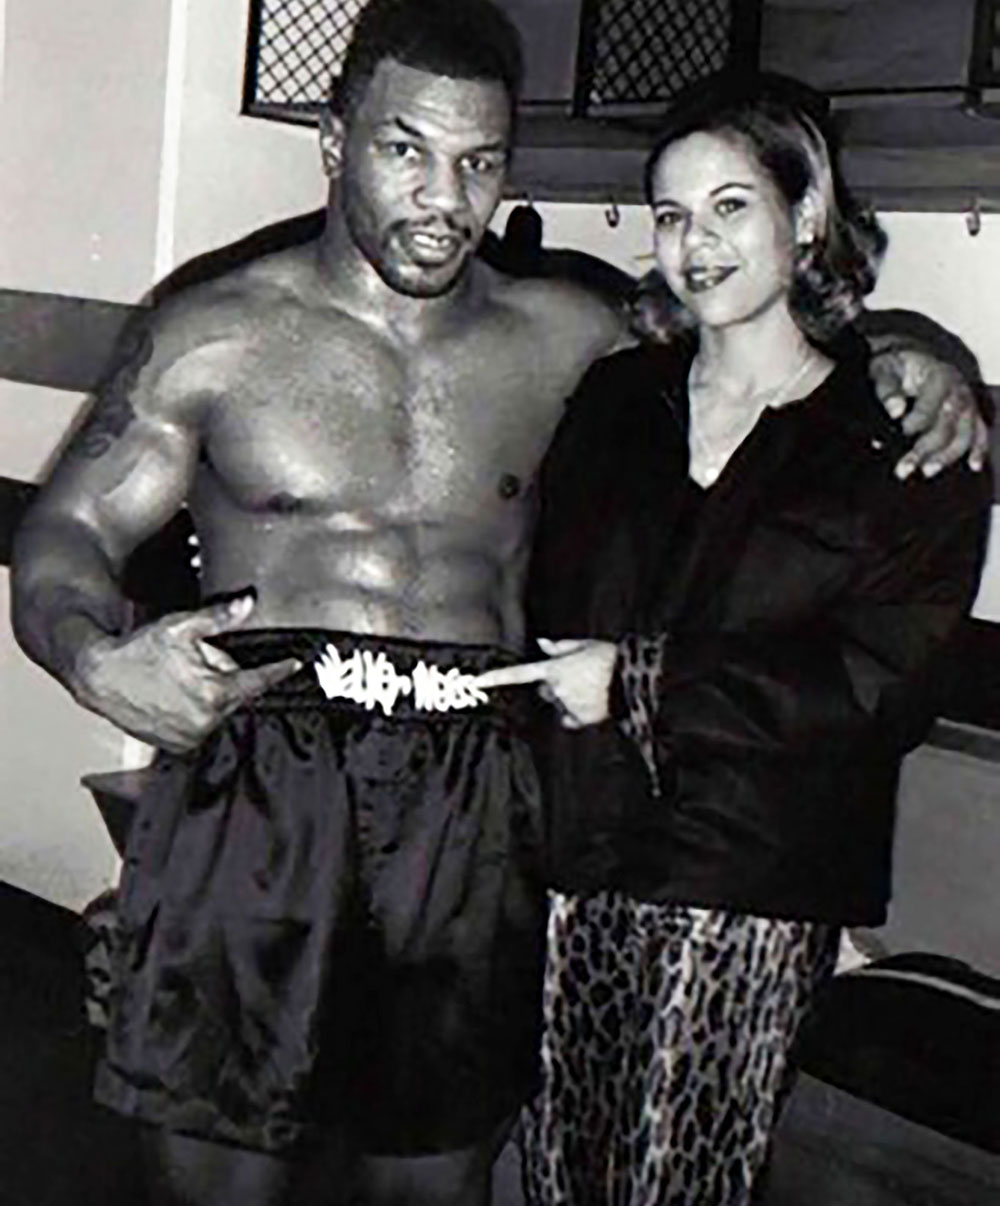 Mike-Tyson-April-Walker-photo-by-Fatima-Holley-Saxton-1